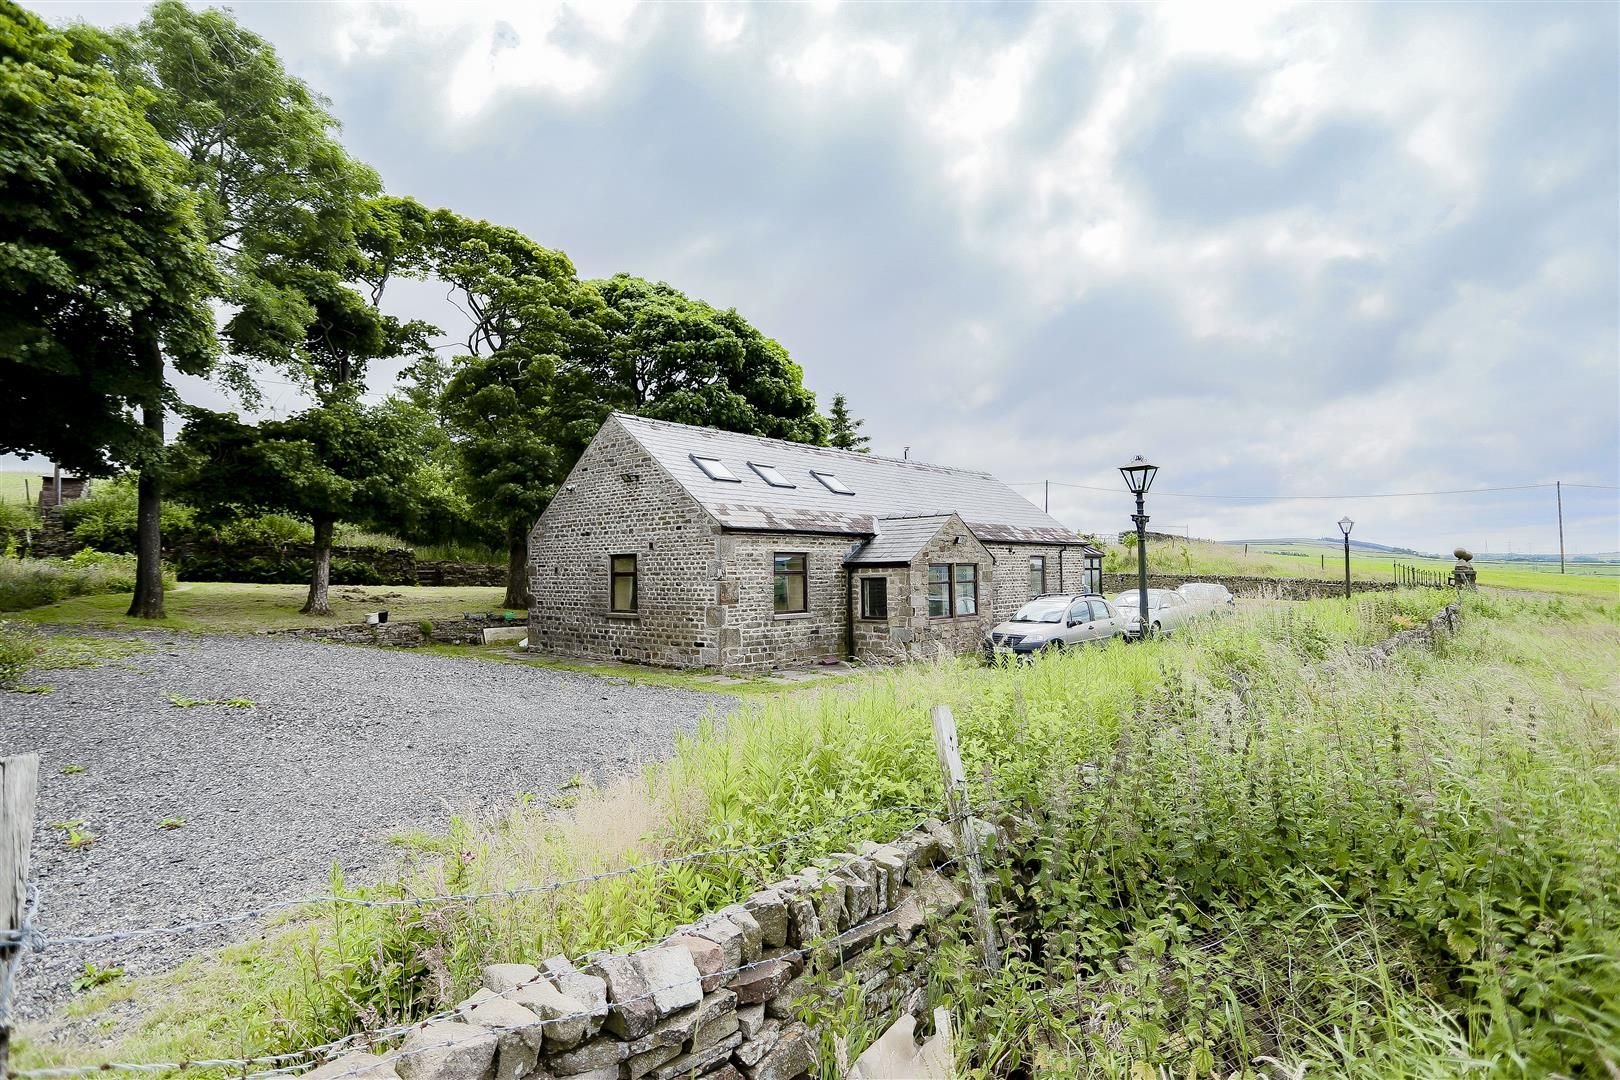 2 Bedroom Barn Conversion For Sale - Main Image